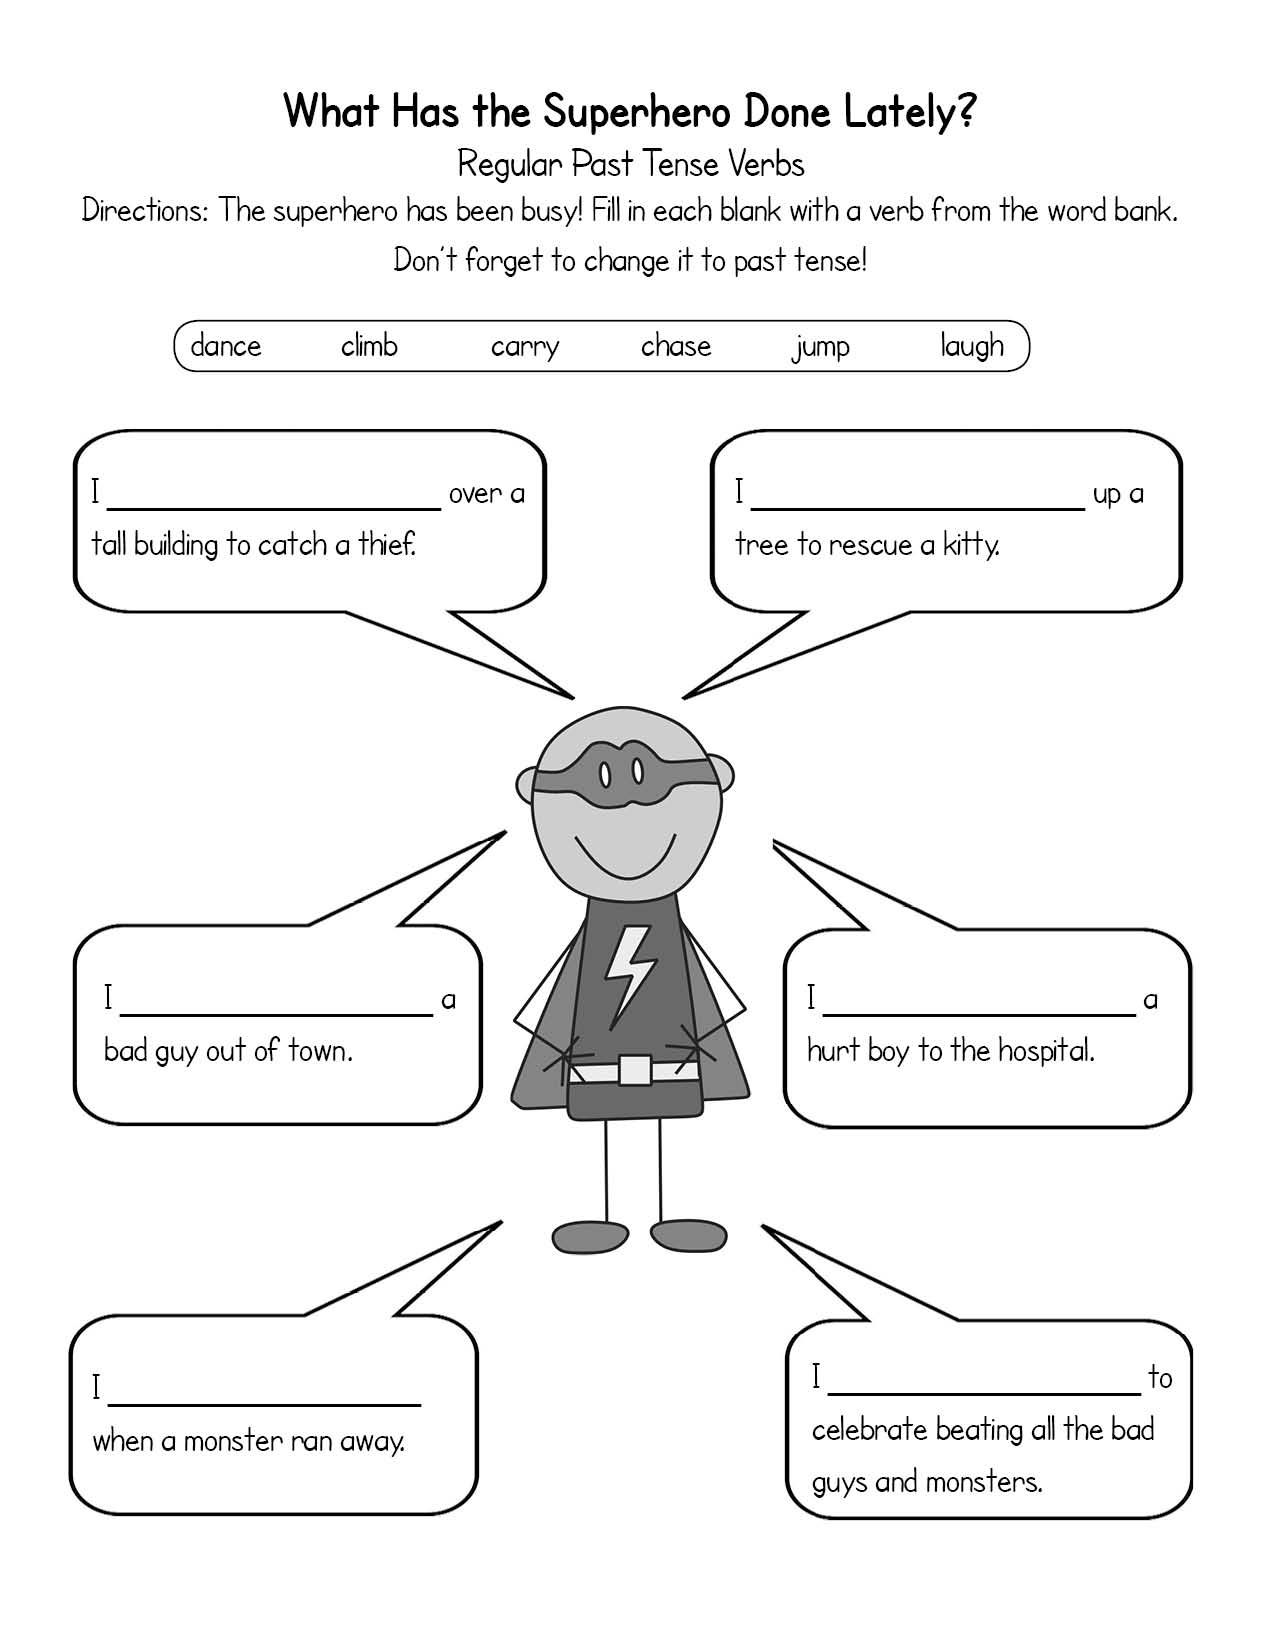 Uncategorized Solution Focused Therapy Worksheets superhero worksheets joey super heros pinterest exercises for kids both regular and irregular past tense verbs there are pre